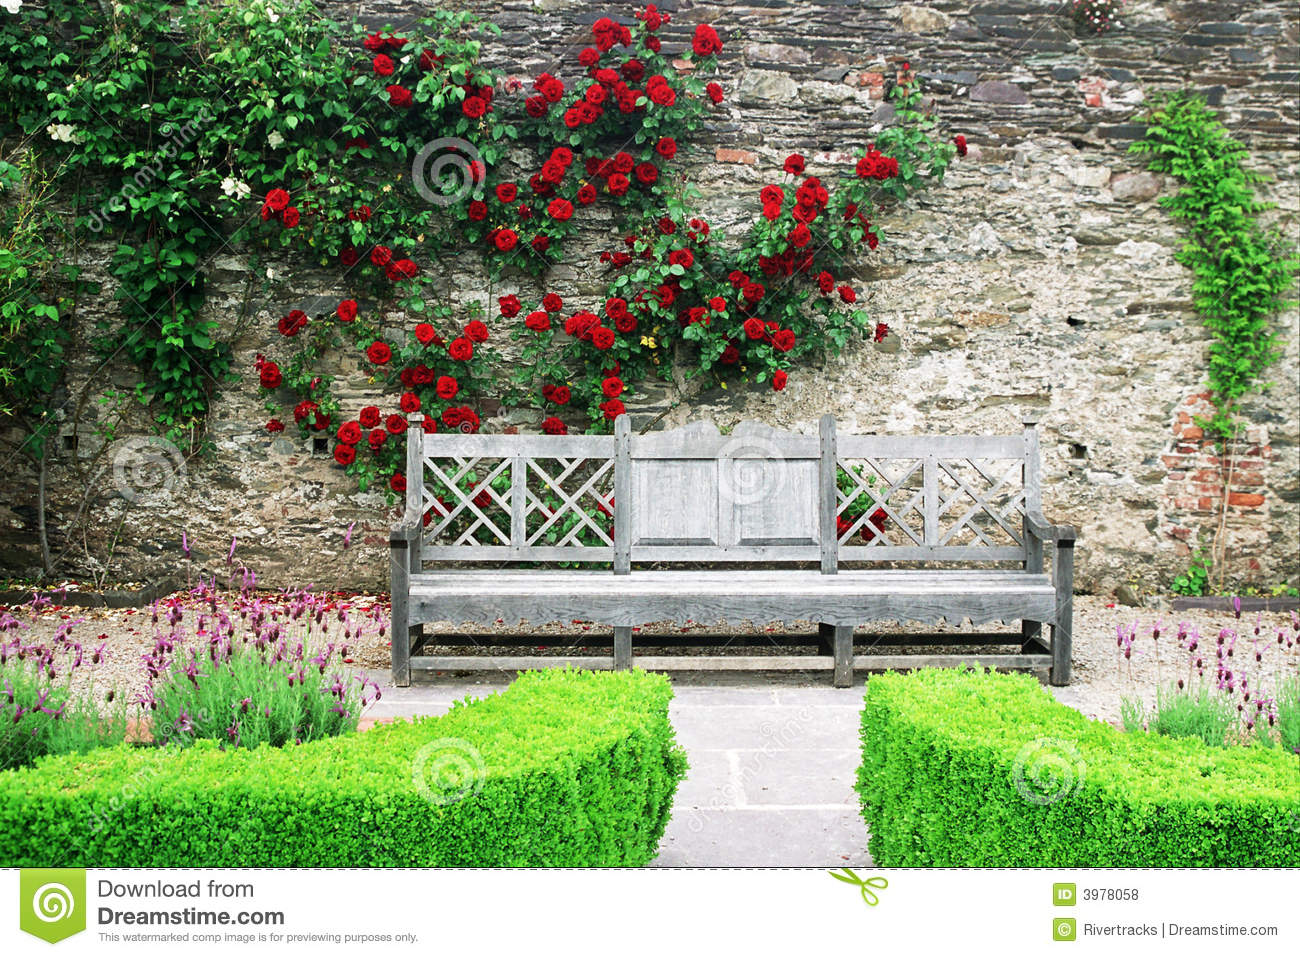 banco de jardim vetor:Wooden bench in the rose gardens of Lismore castle with bright flowers